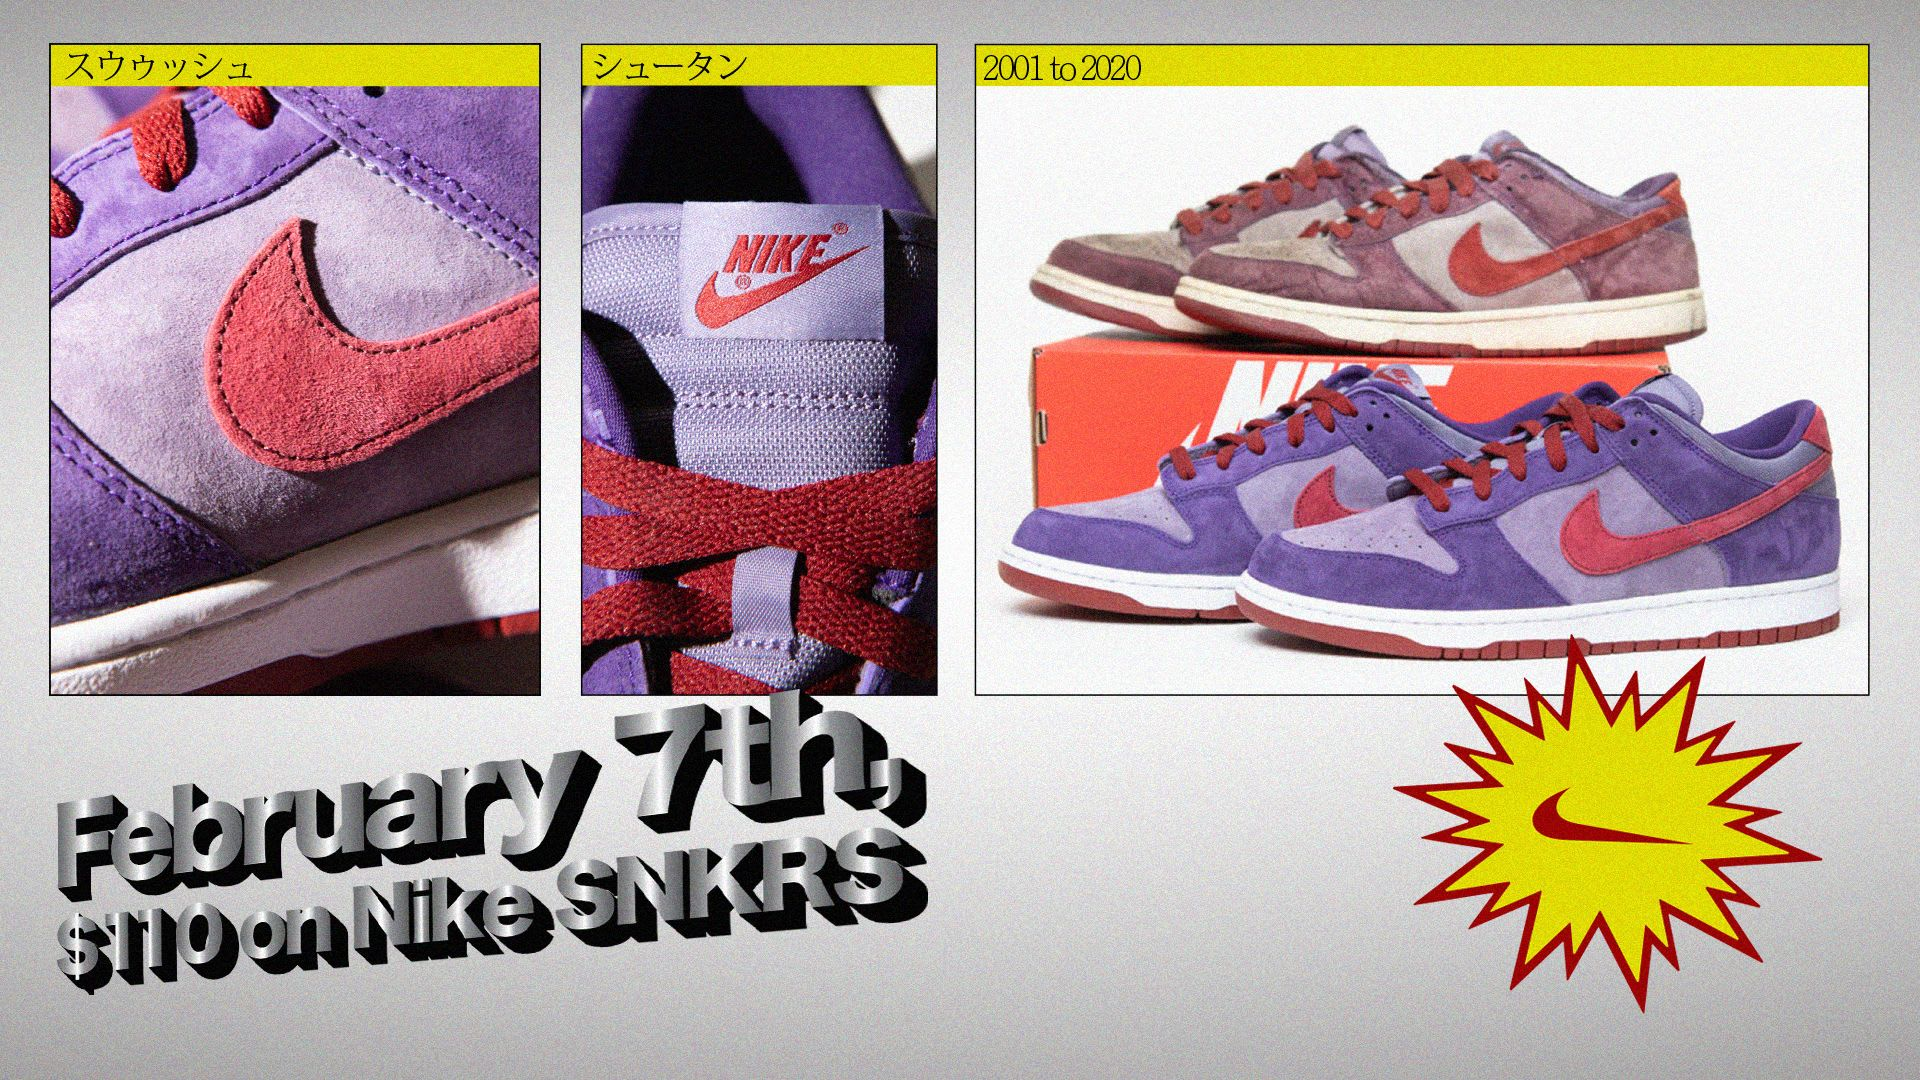 nike-dunk-low-plum-2020-snkrs